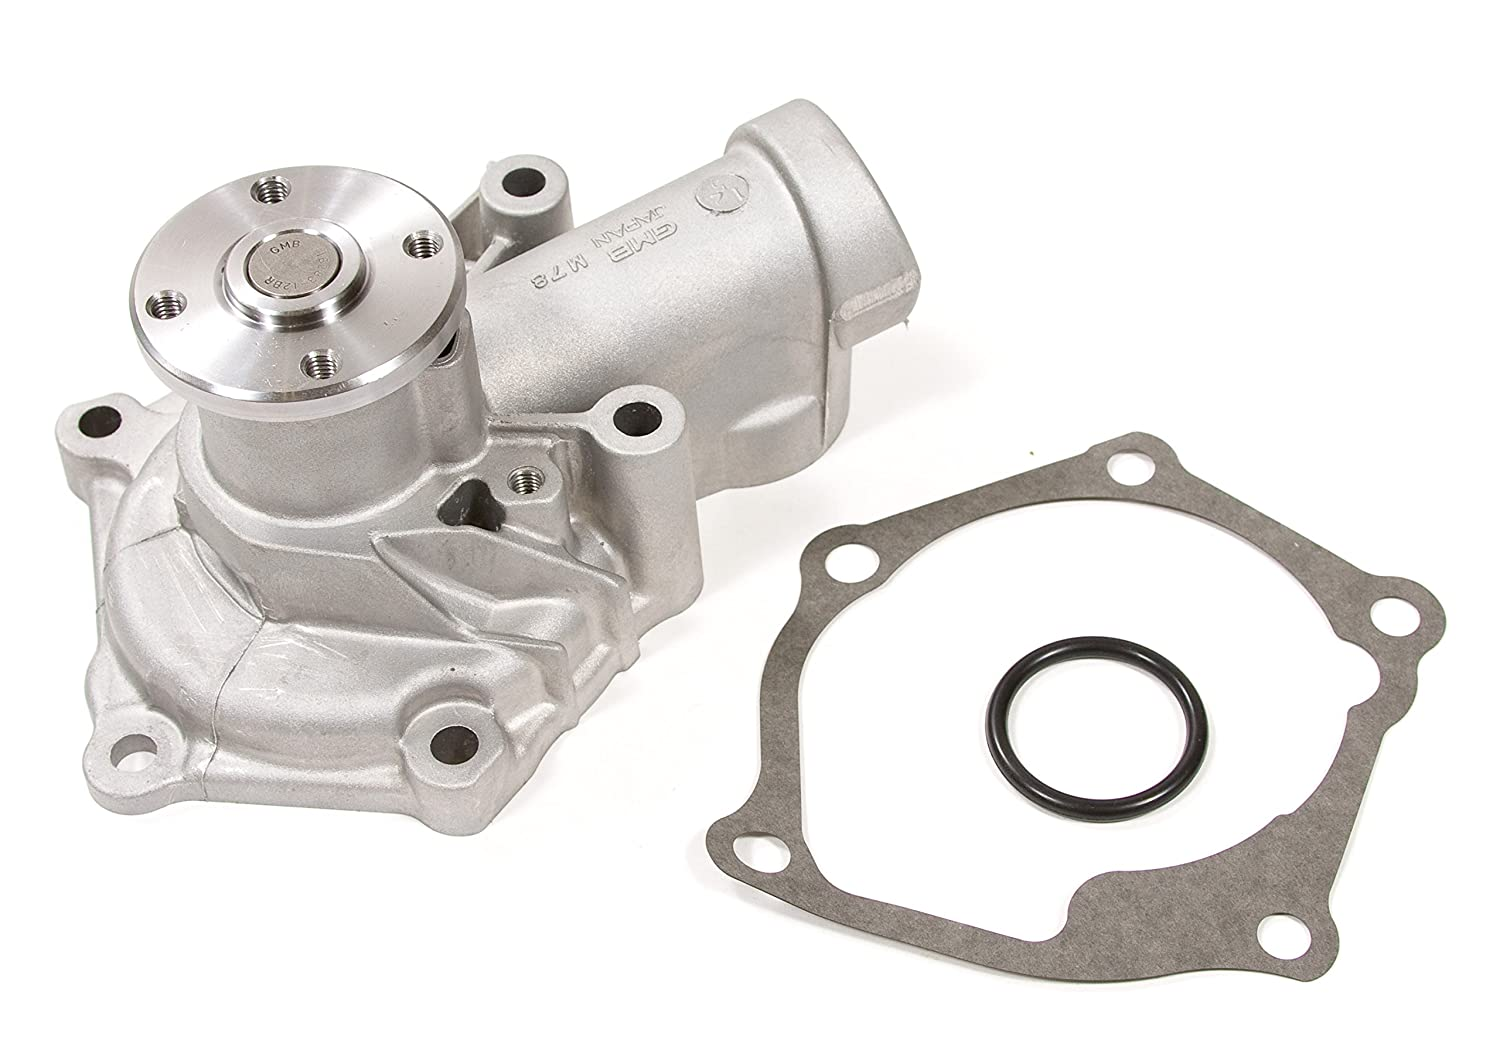 Evergreen TBK332WP 04-07 Mitsubishi Eclipse Galant Outlander 2.4L 4G69 Timing Belt Kit GMB Water Pump Evergreen Parts And Components